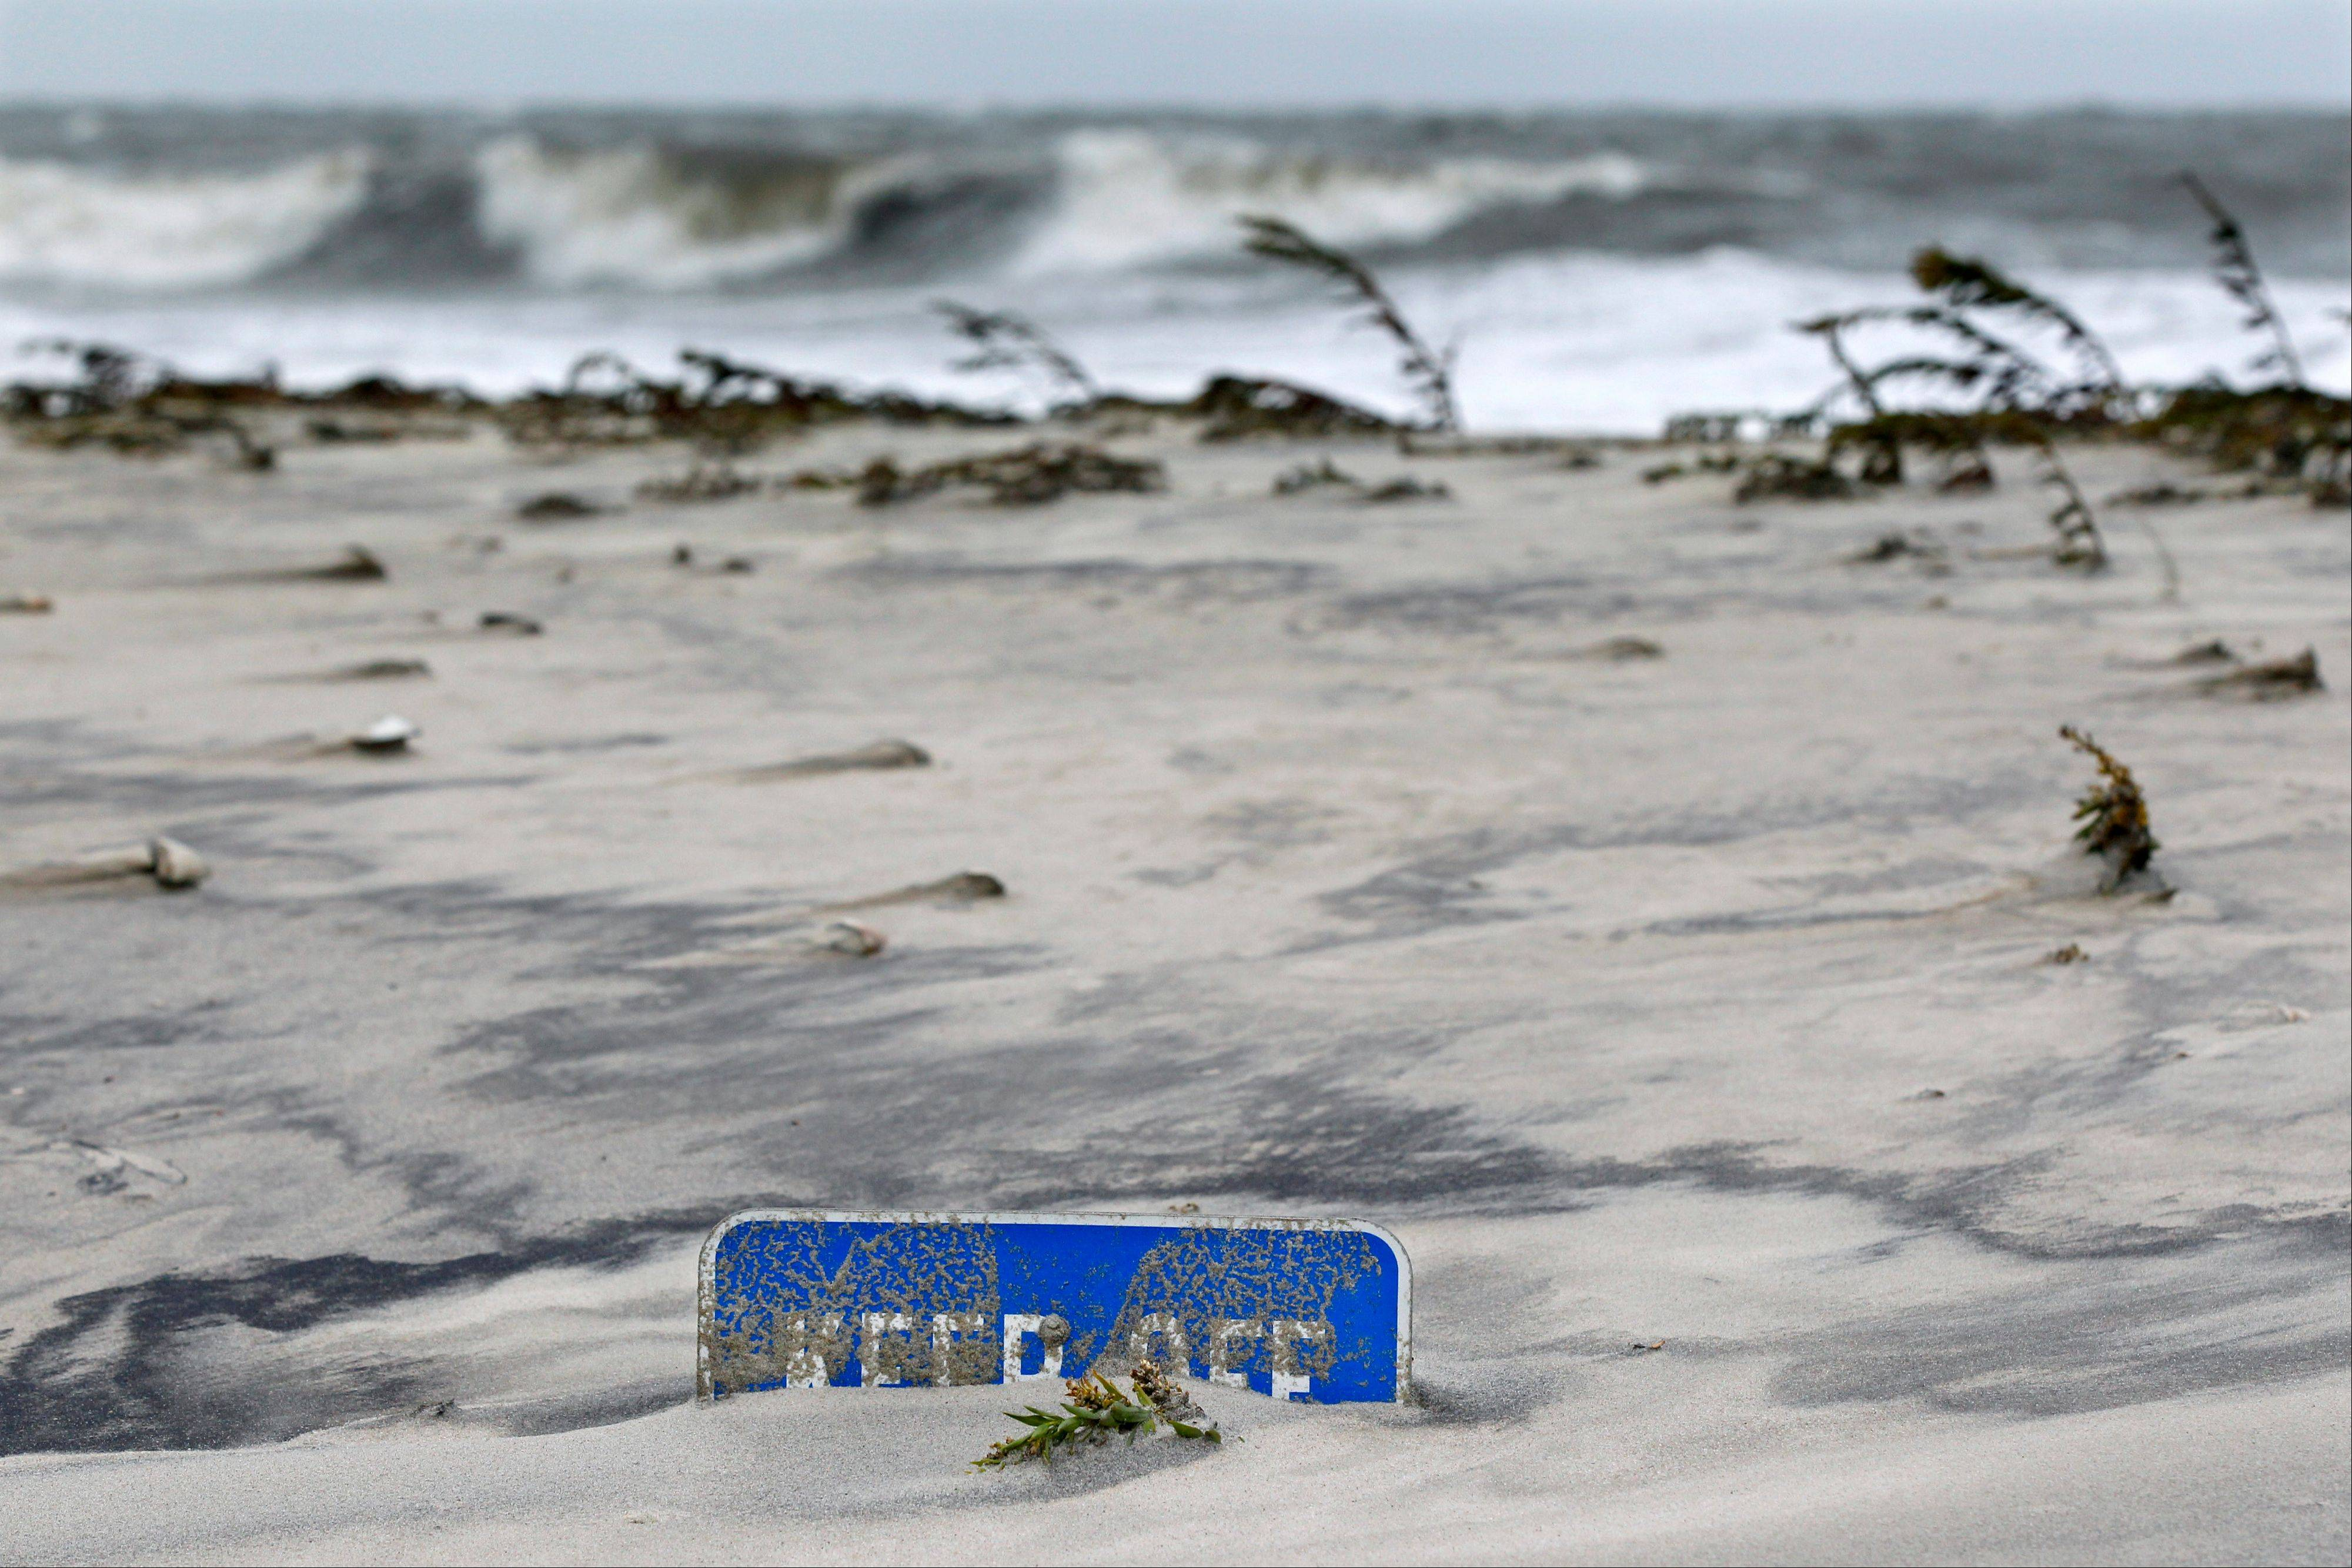 A keep off the dunes sign is buried Tuesday morning, Oct. 29, 2012, in Cape May, N.J., after a storm surge from superstormSandy pushed the Atlantic Ocean over the beach and into the streets. The storm that made landfall in New Jersey on Monday evening with 80 mph sustained winds killed at least 16 people in seven states, cut power to more than 7.4 million homes and businesses from the Carolinas to Ohio, caused scares at two nuclear power plants and stopped the presidential campaign cold.